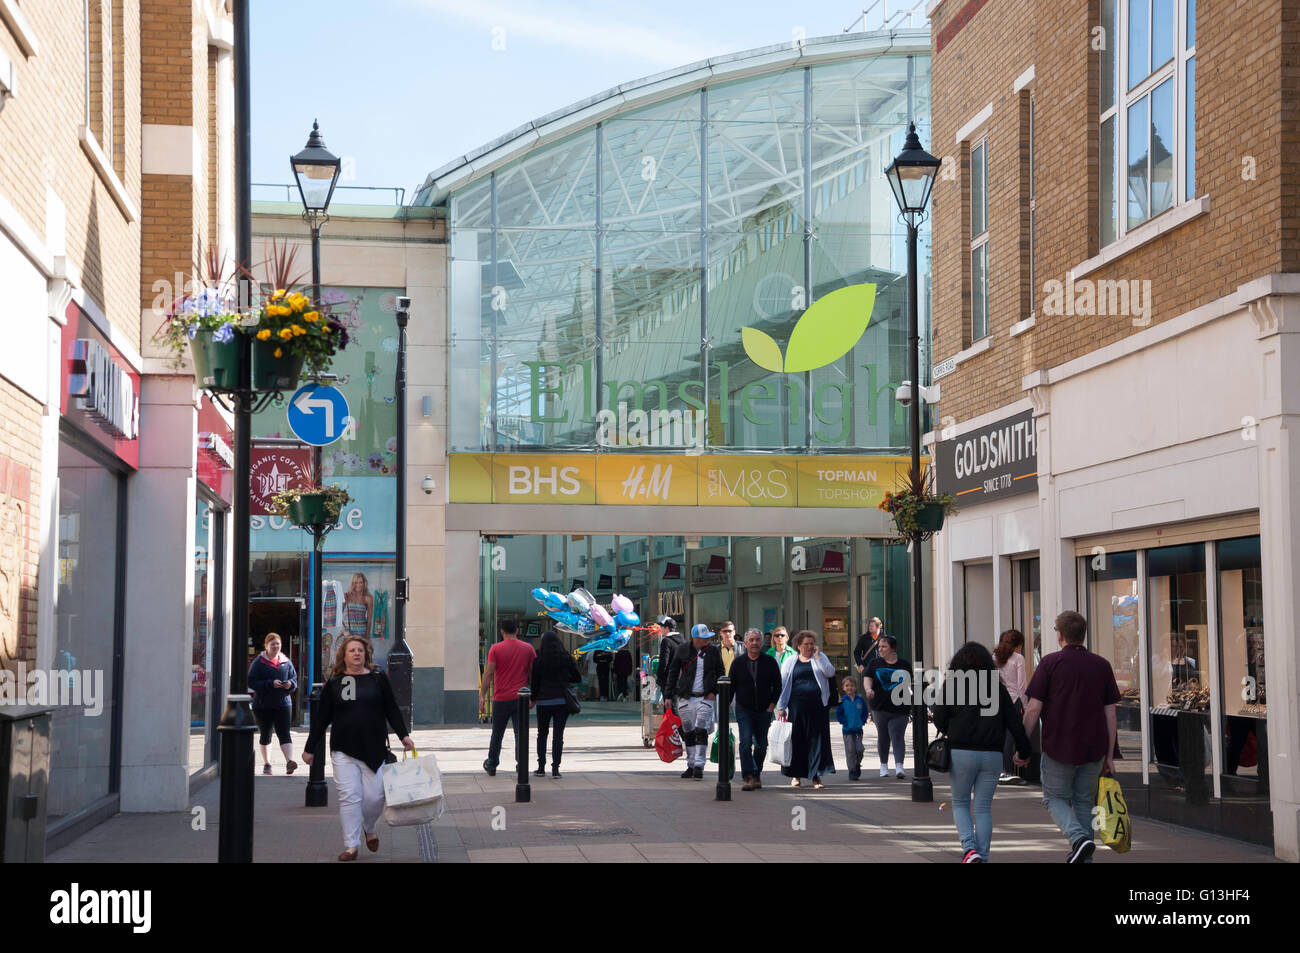 Related Searches. the elmsleigh centre staines-upon-thames • the elmsleigh centre staines-upon-thames photos • the elmsleigh centre staines-upon-thames location/10(50).